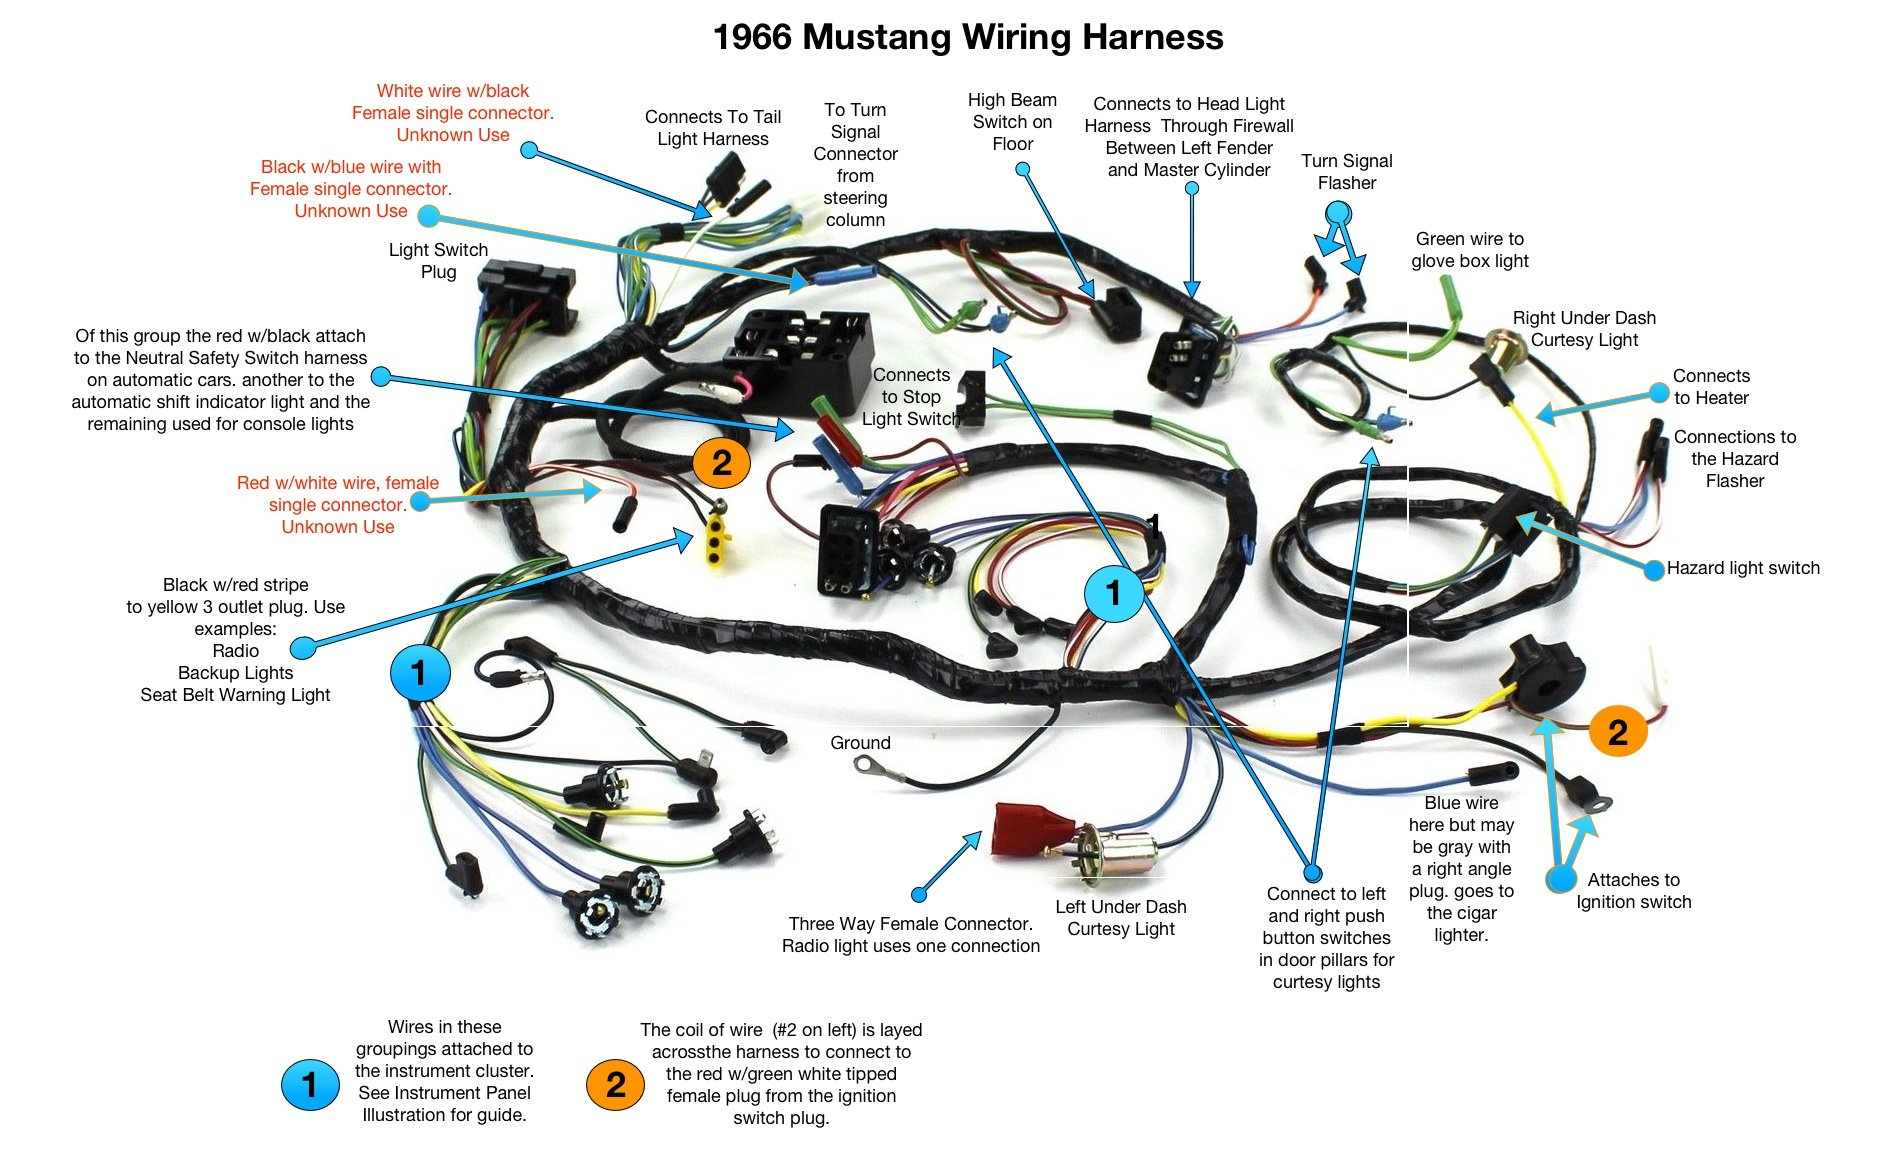 507585d1458686767 66 wiring harness diagram 66 mustang wiring harness harness wiring diagram jeep wrangler wiring harness diagram \u2022 free cable harness diagram at mr168.co